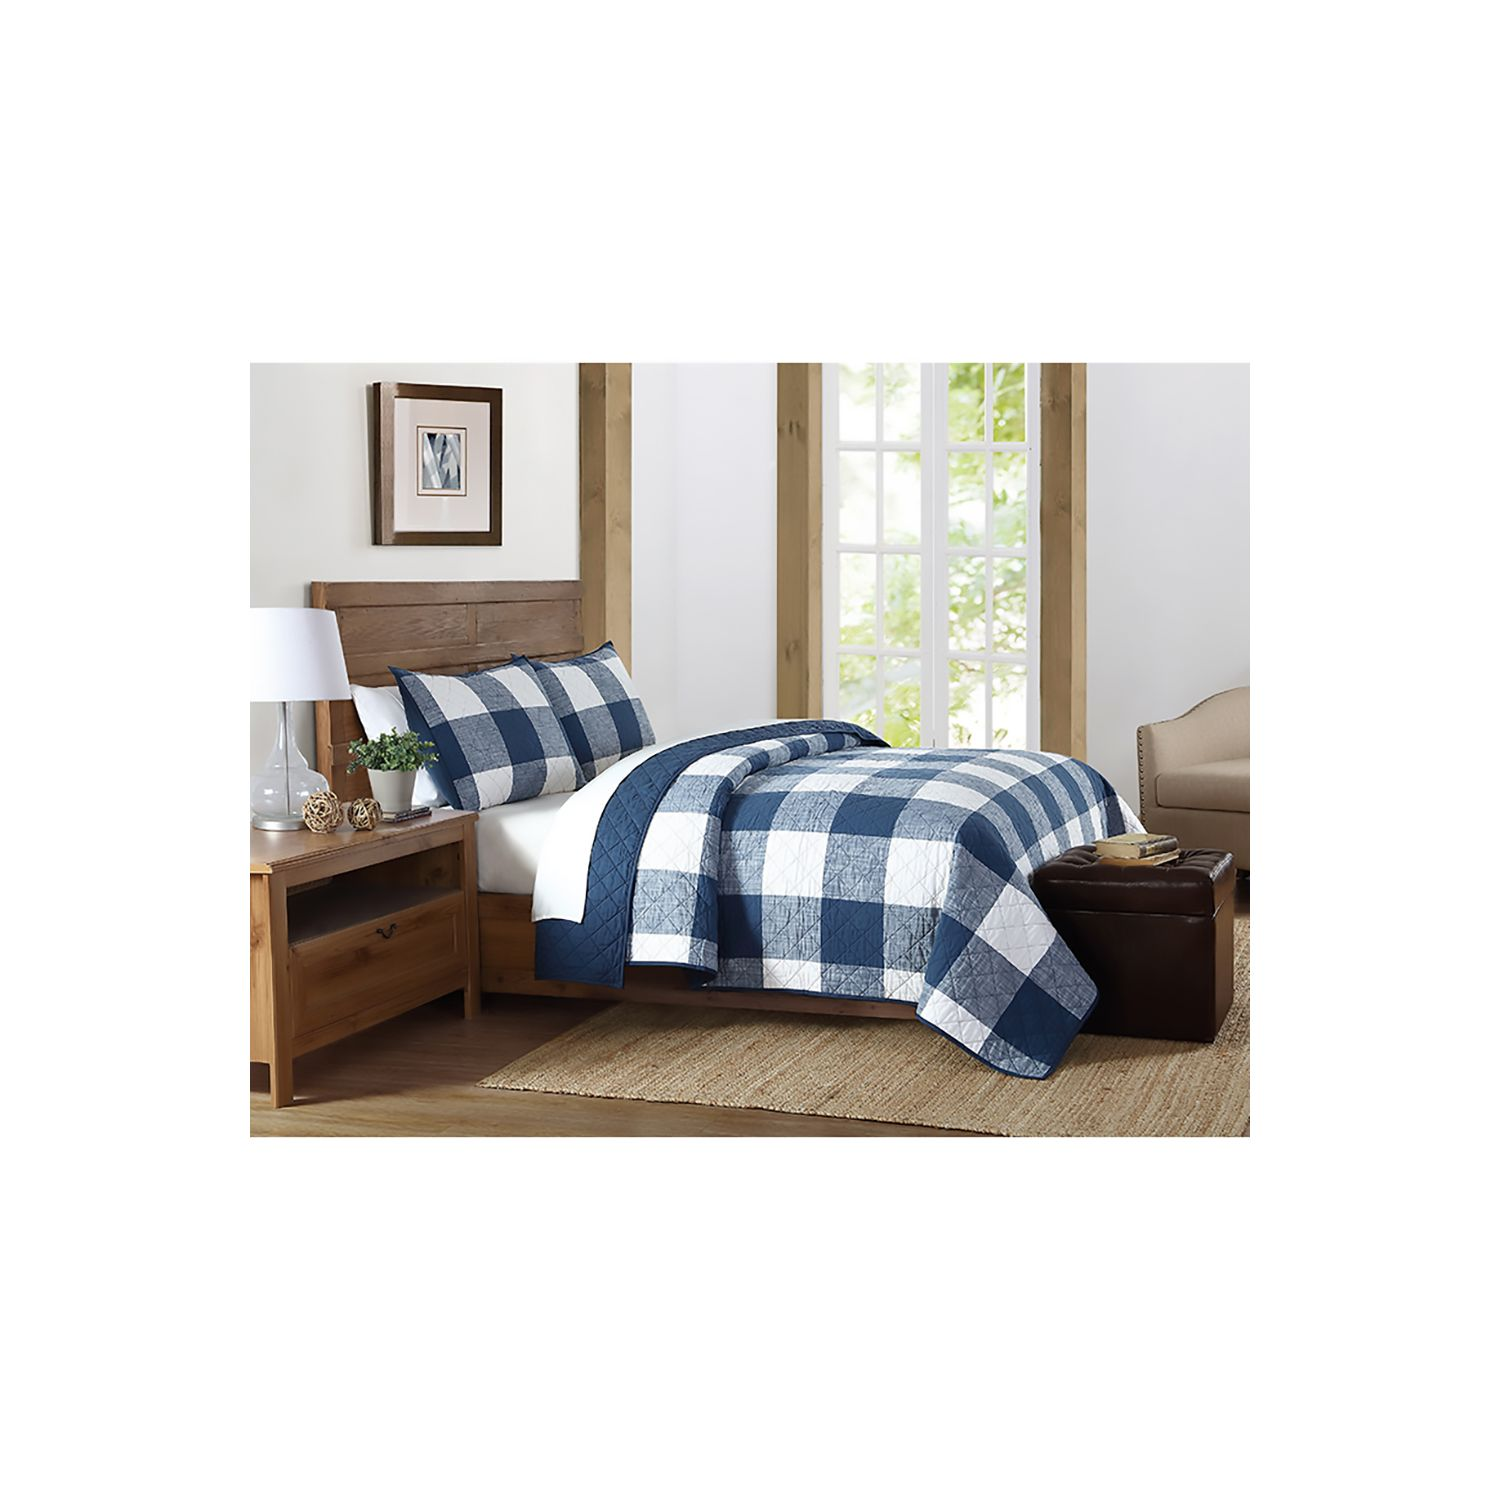 bedding shipping bath cover duvet printed overstock today comforter plaid everyday product set buffalo soft free truly check